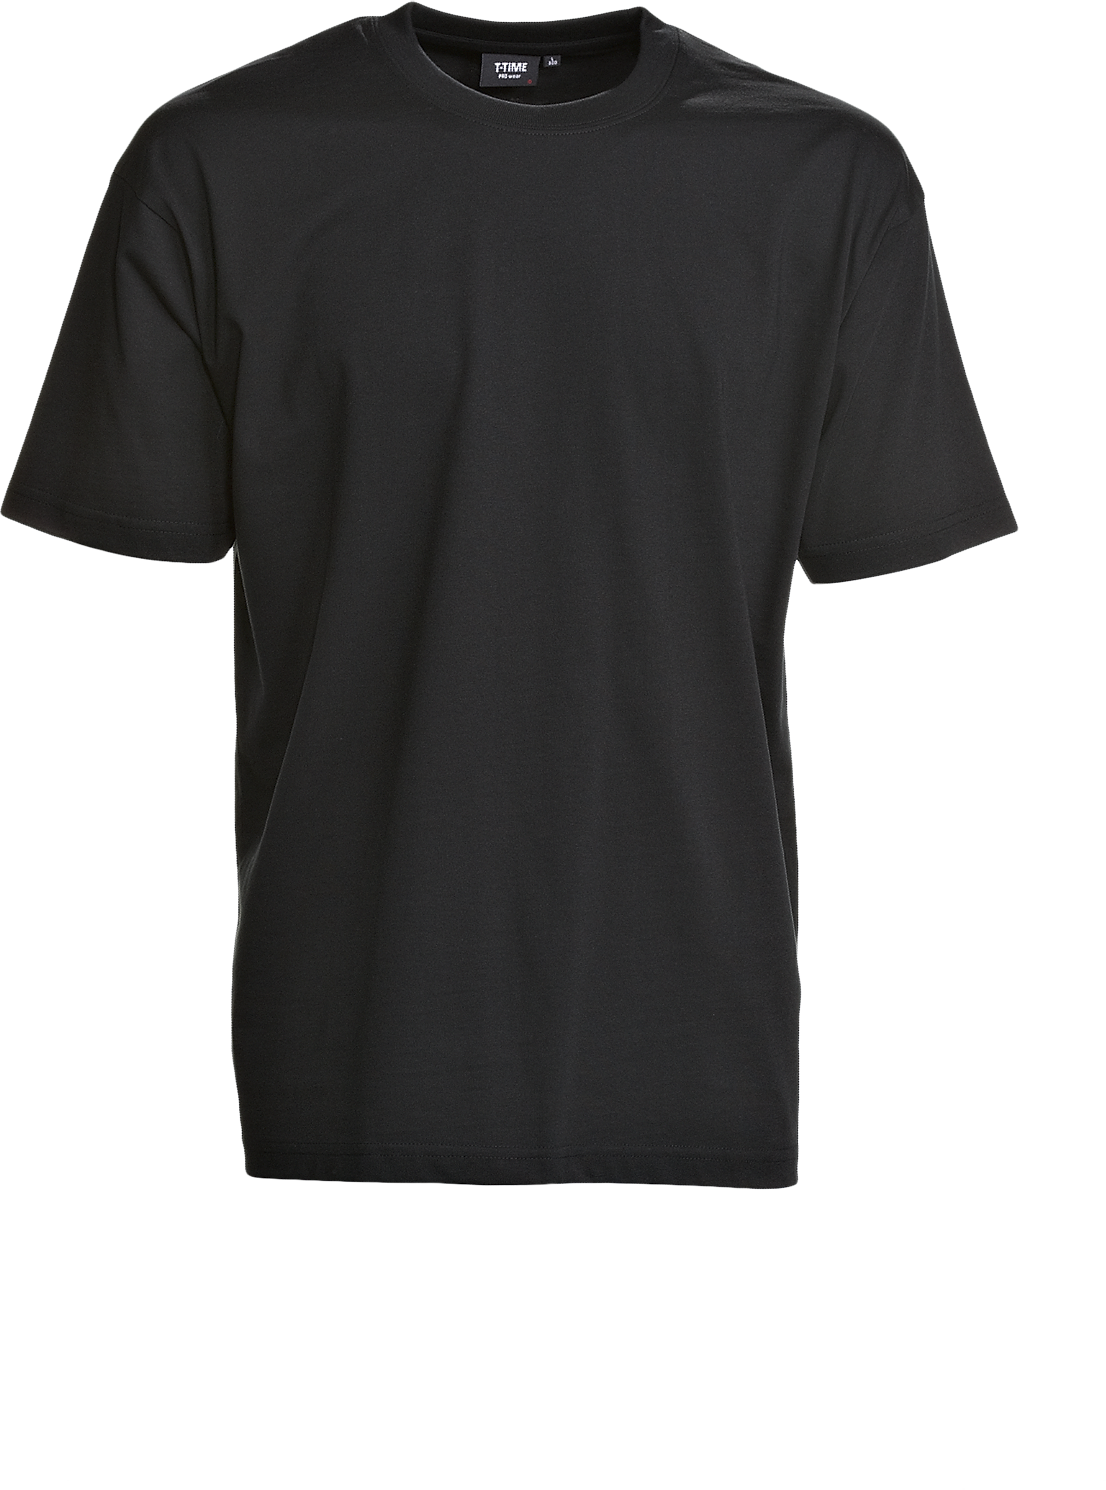 Mens T-Shirt, Prowear (815021100)